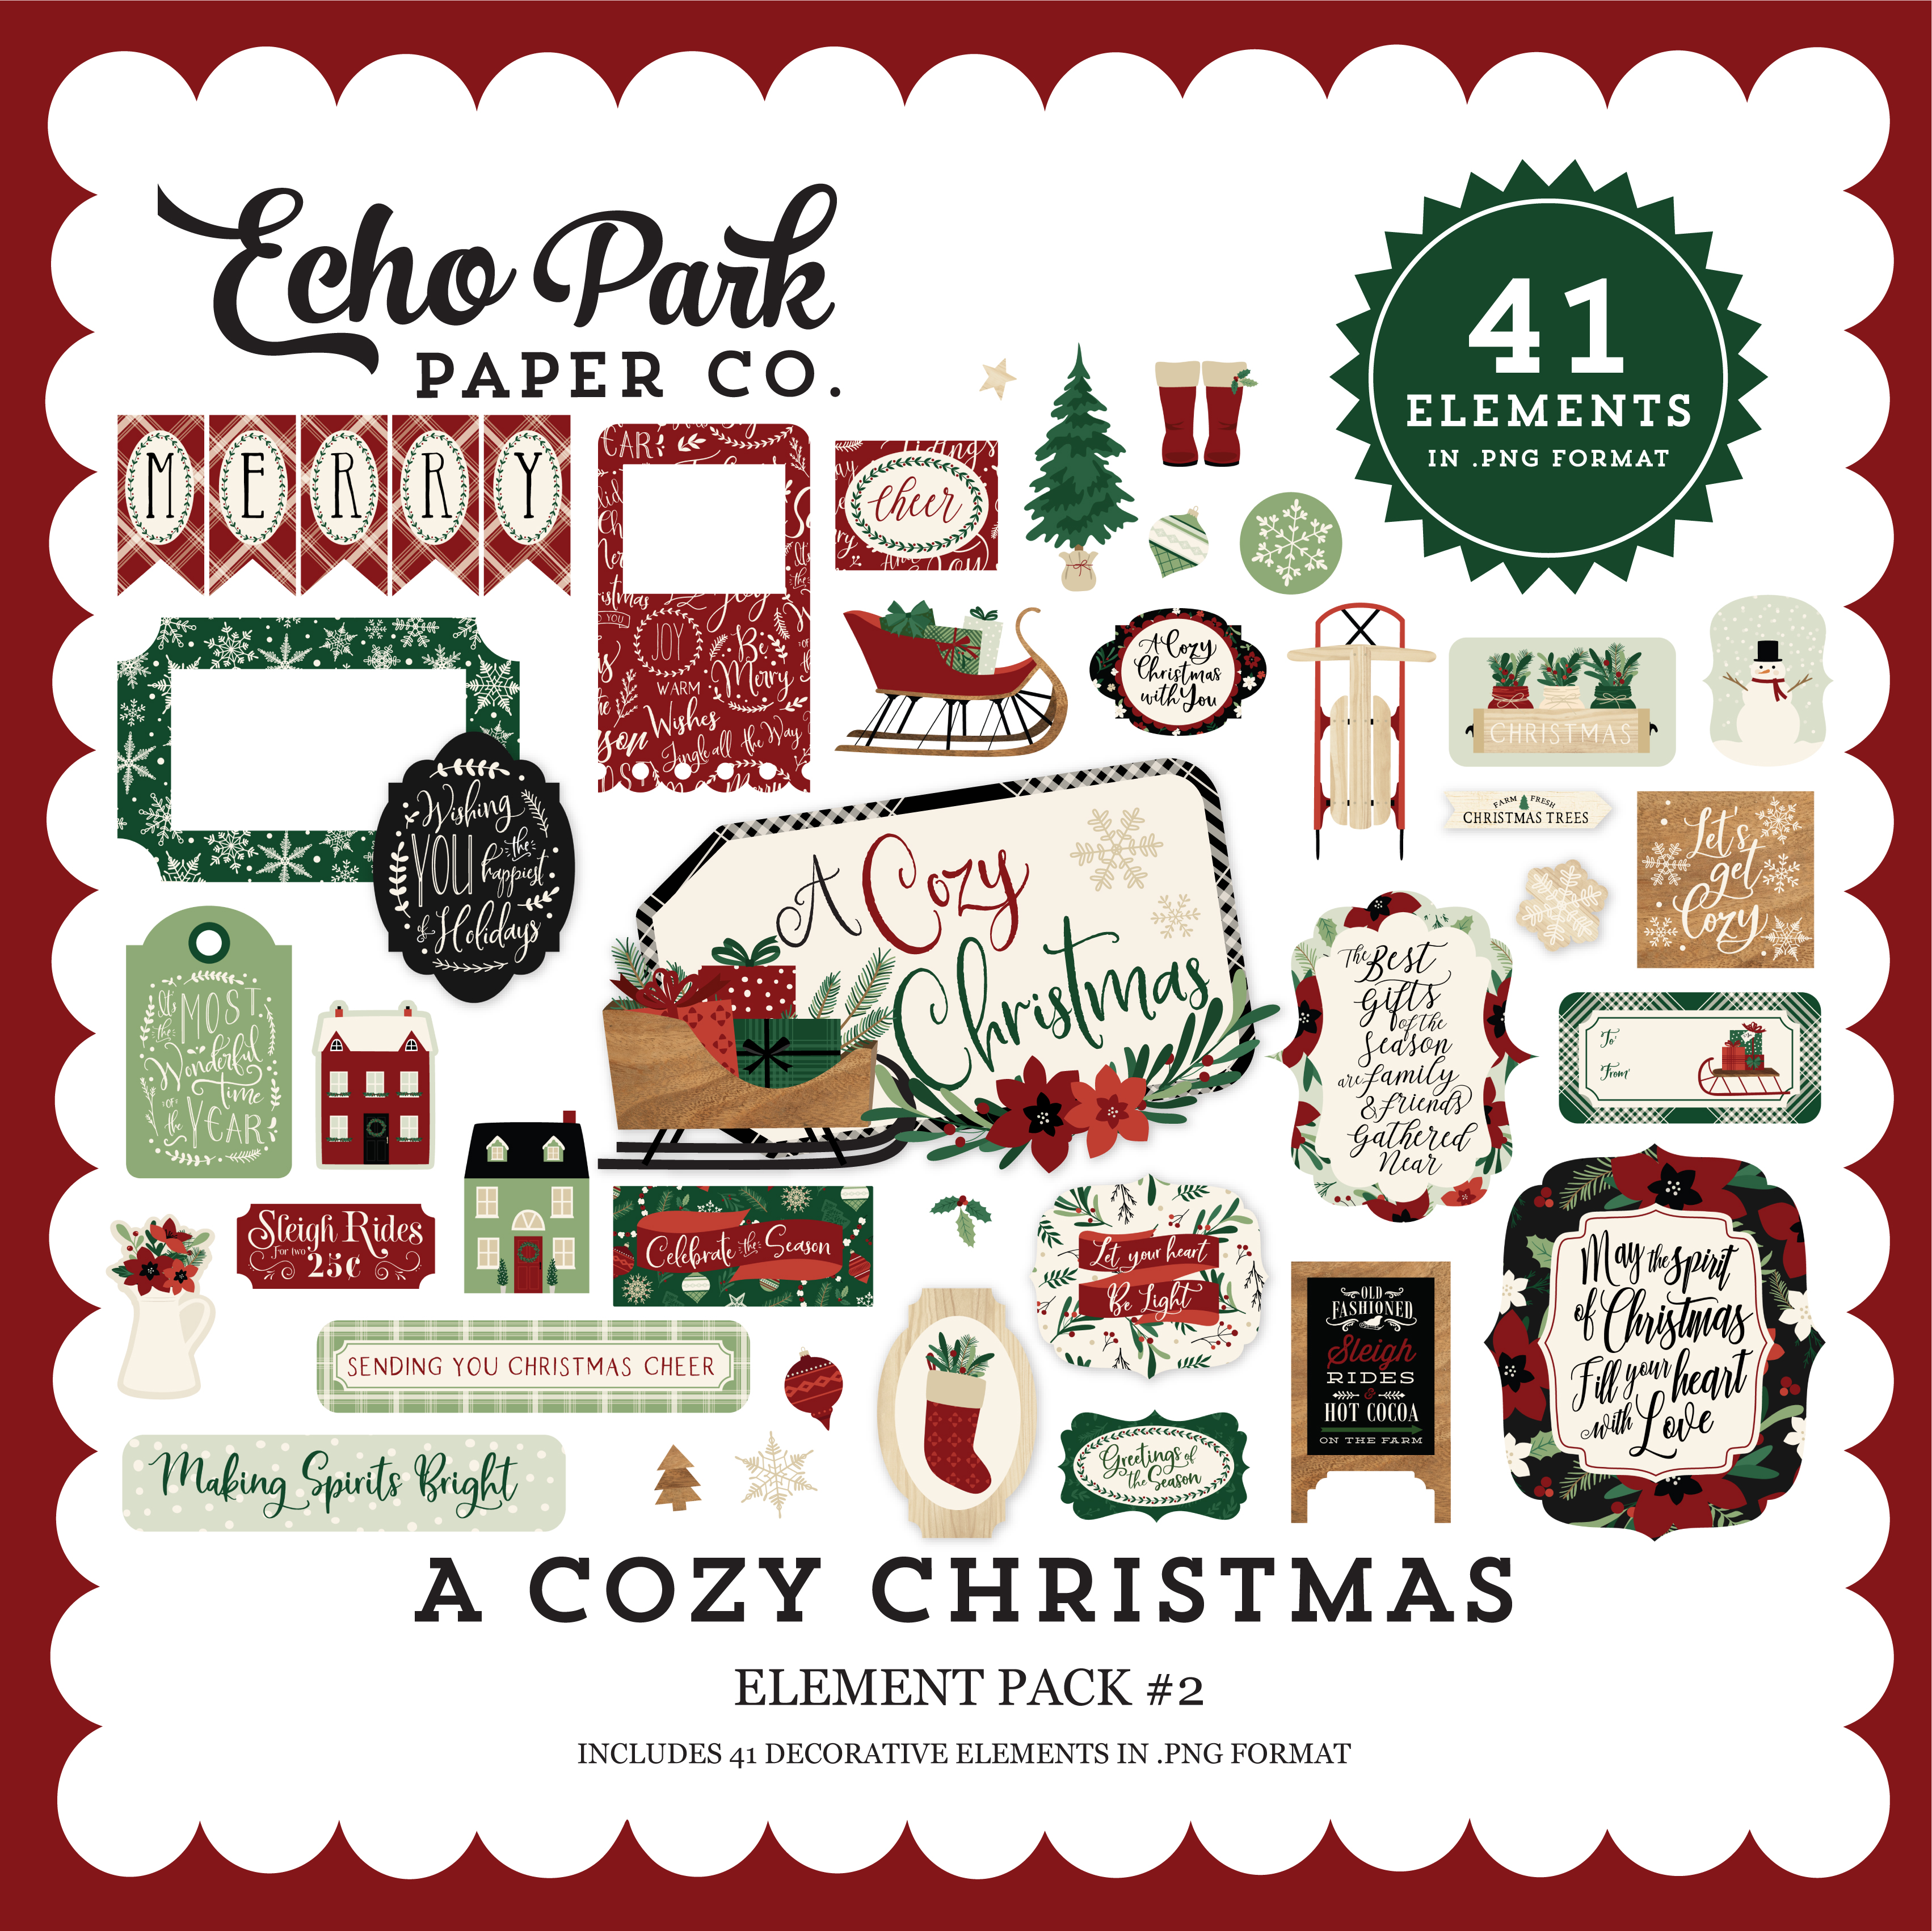 A Cozy Christmas Element Pack #2